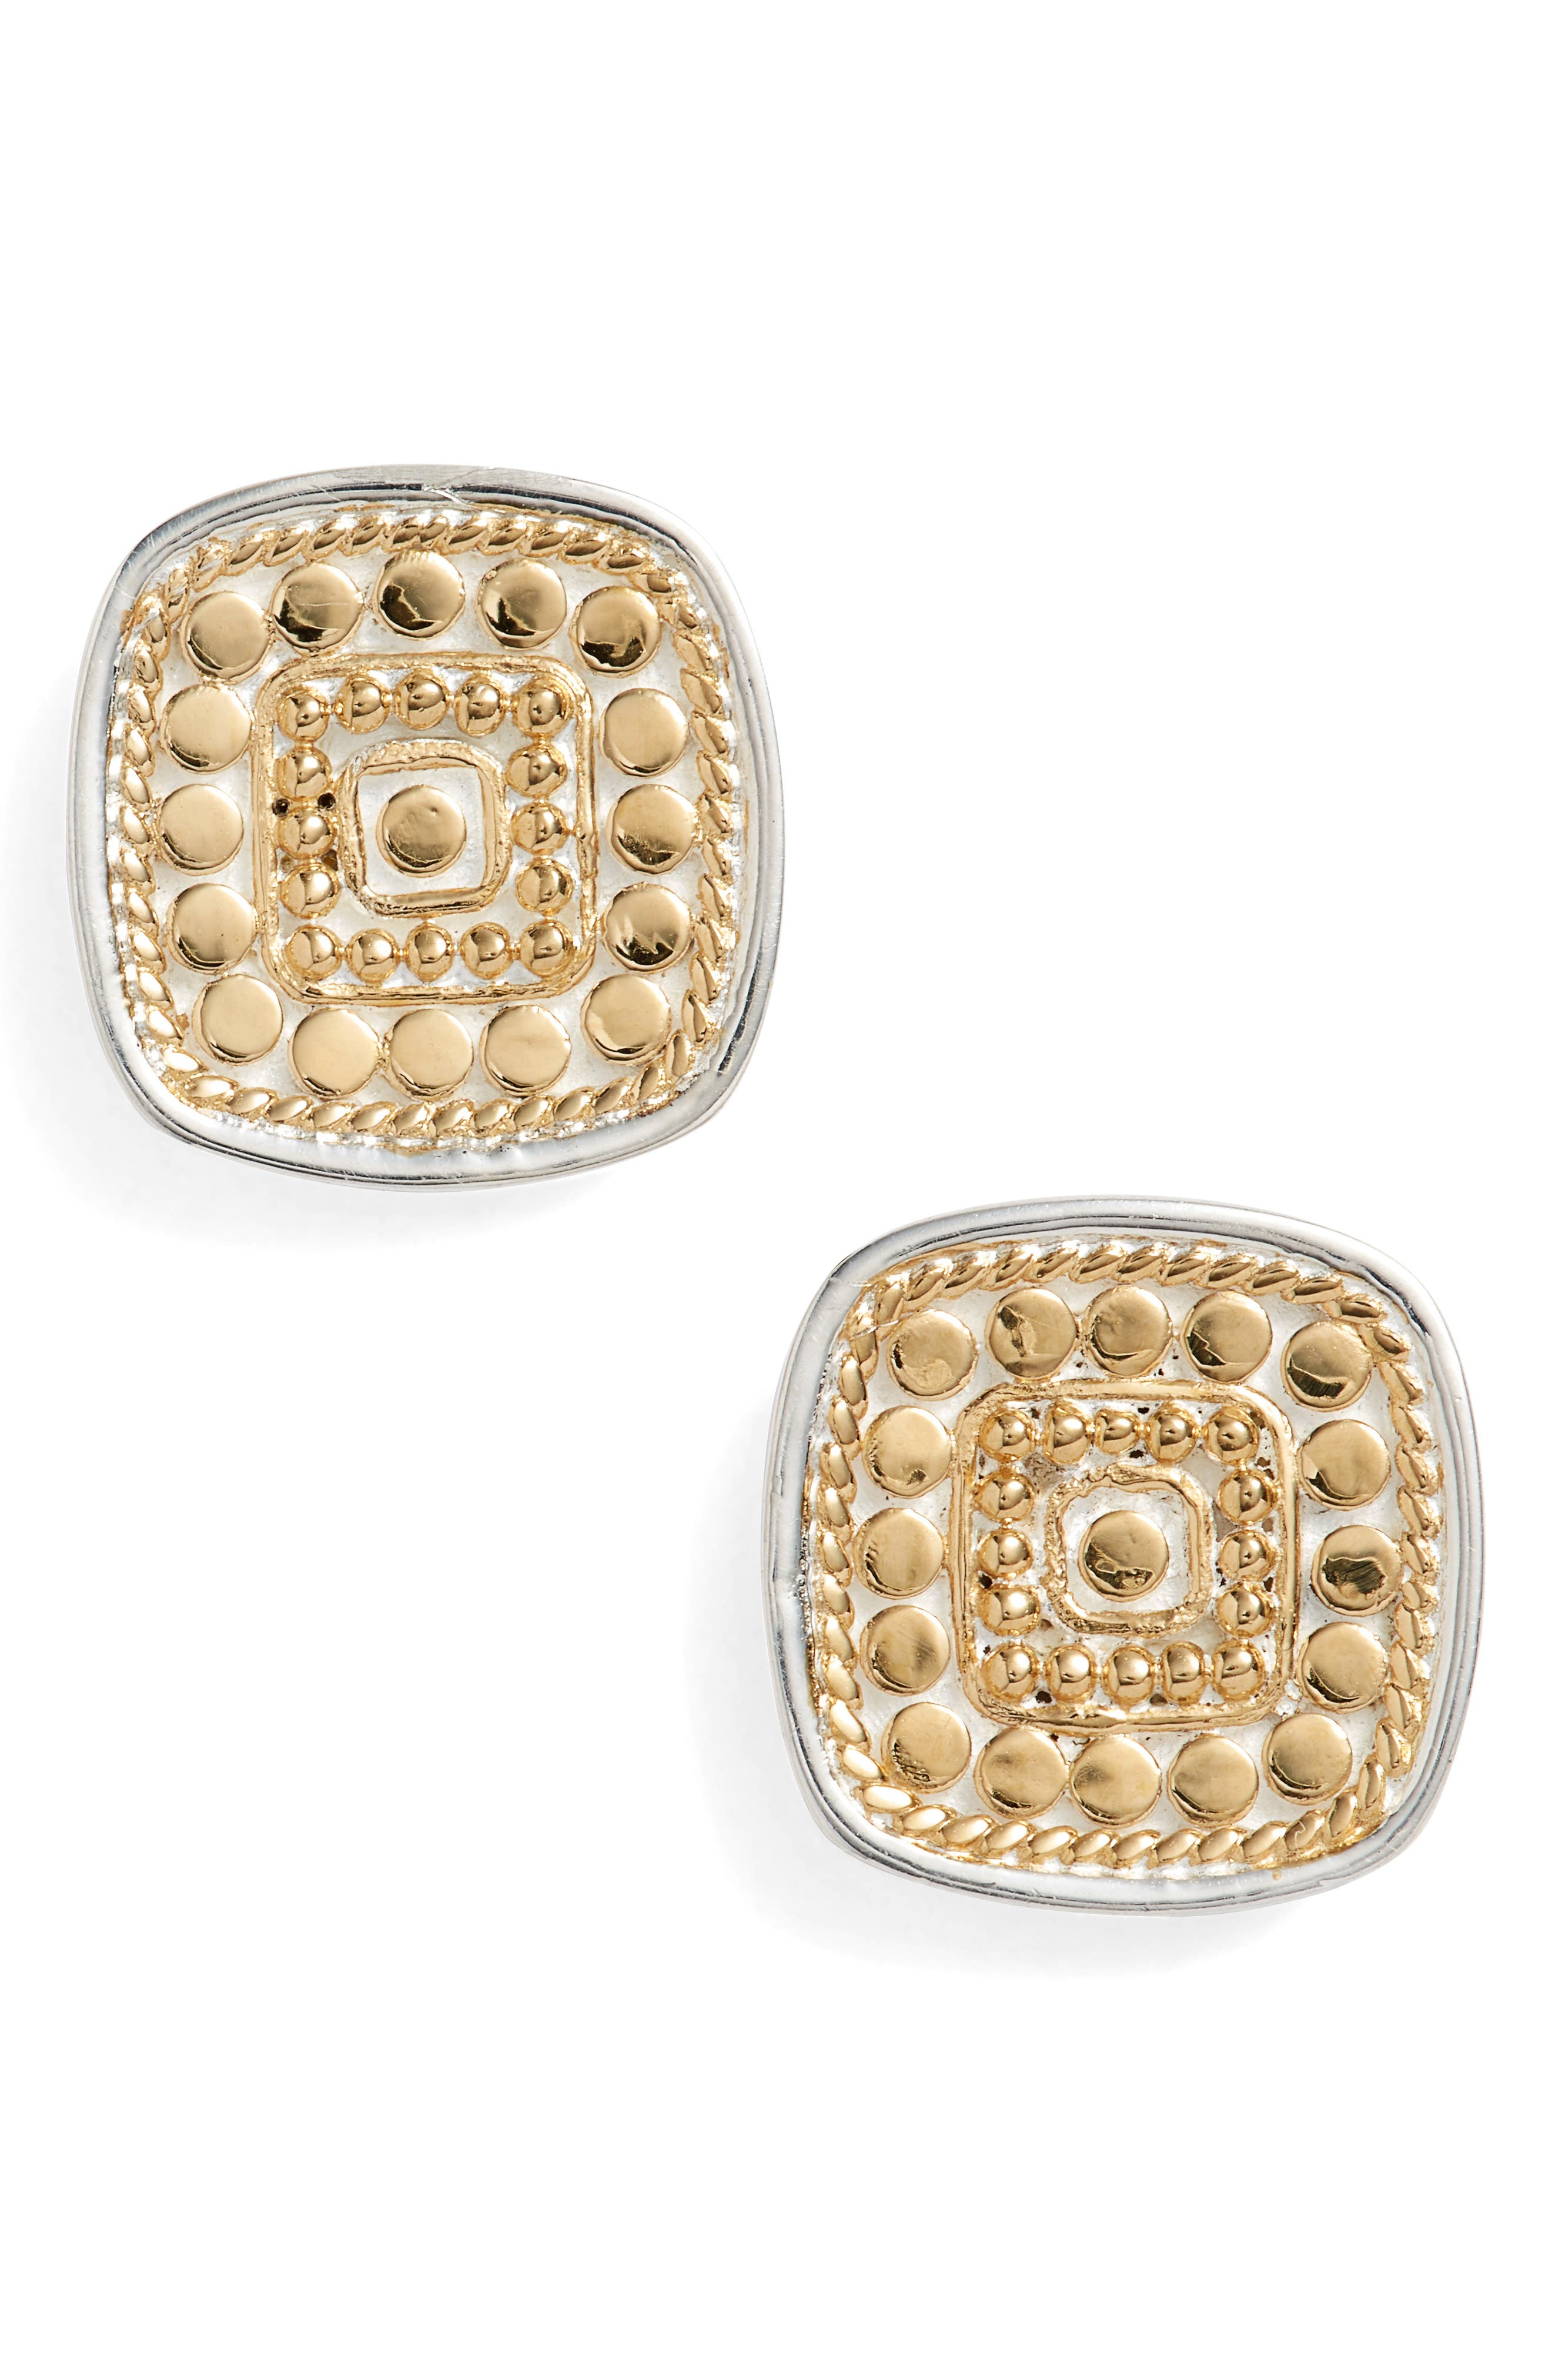 ANNA BECK Cushion Stud Earrings in Gold/ Silver